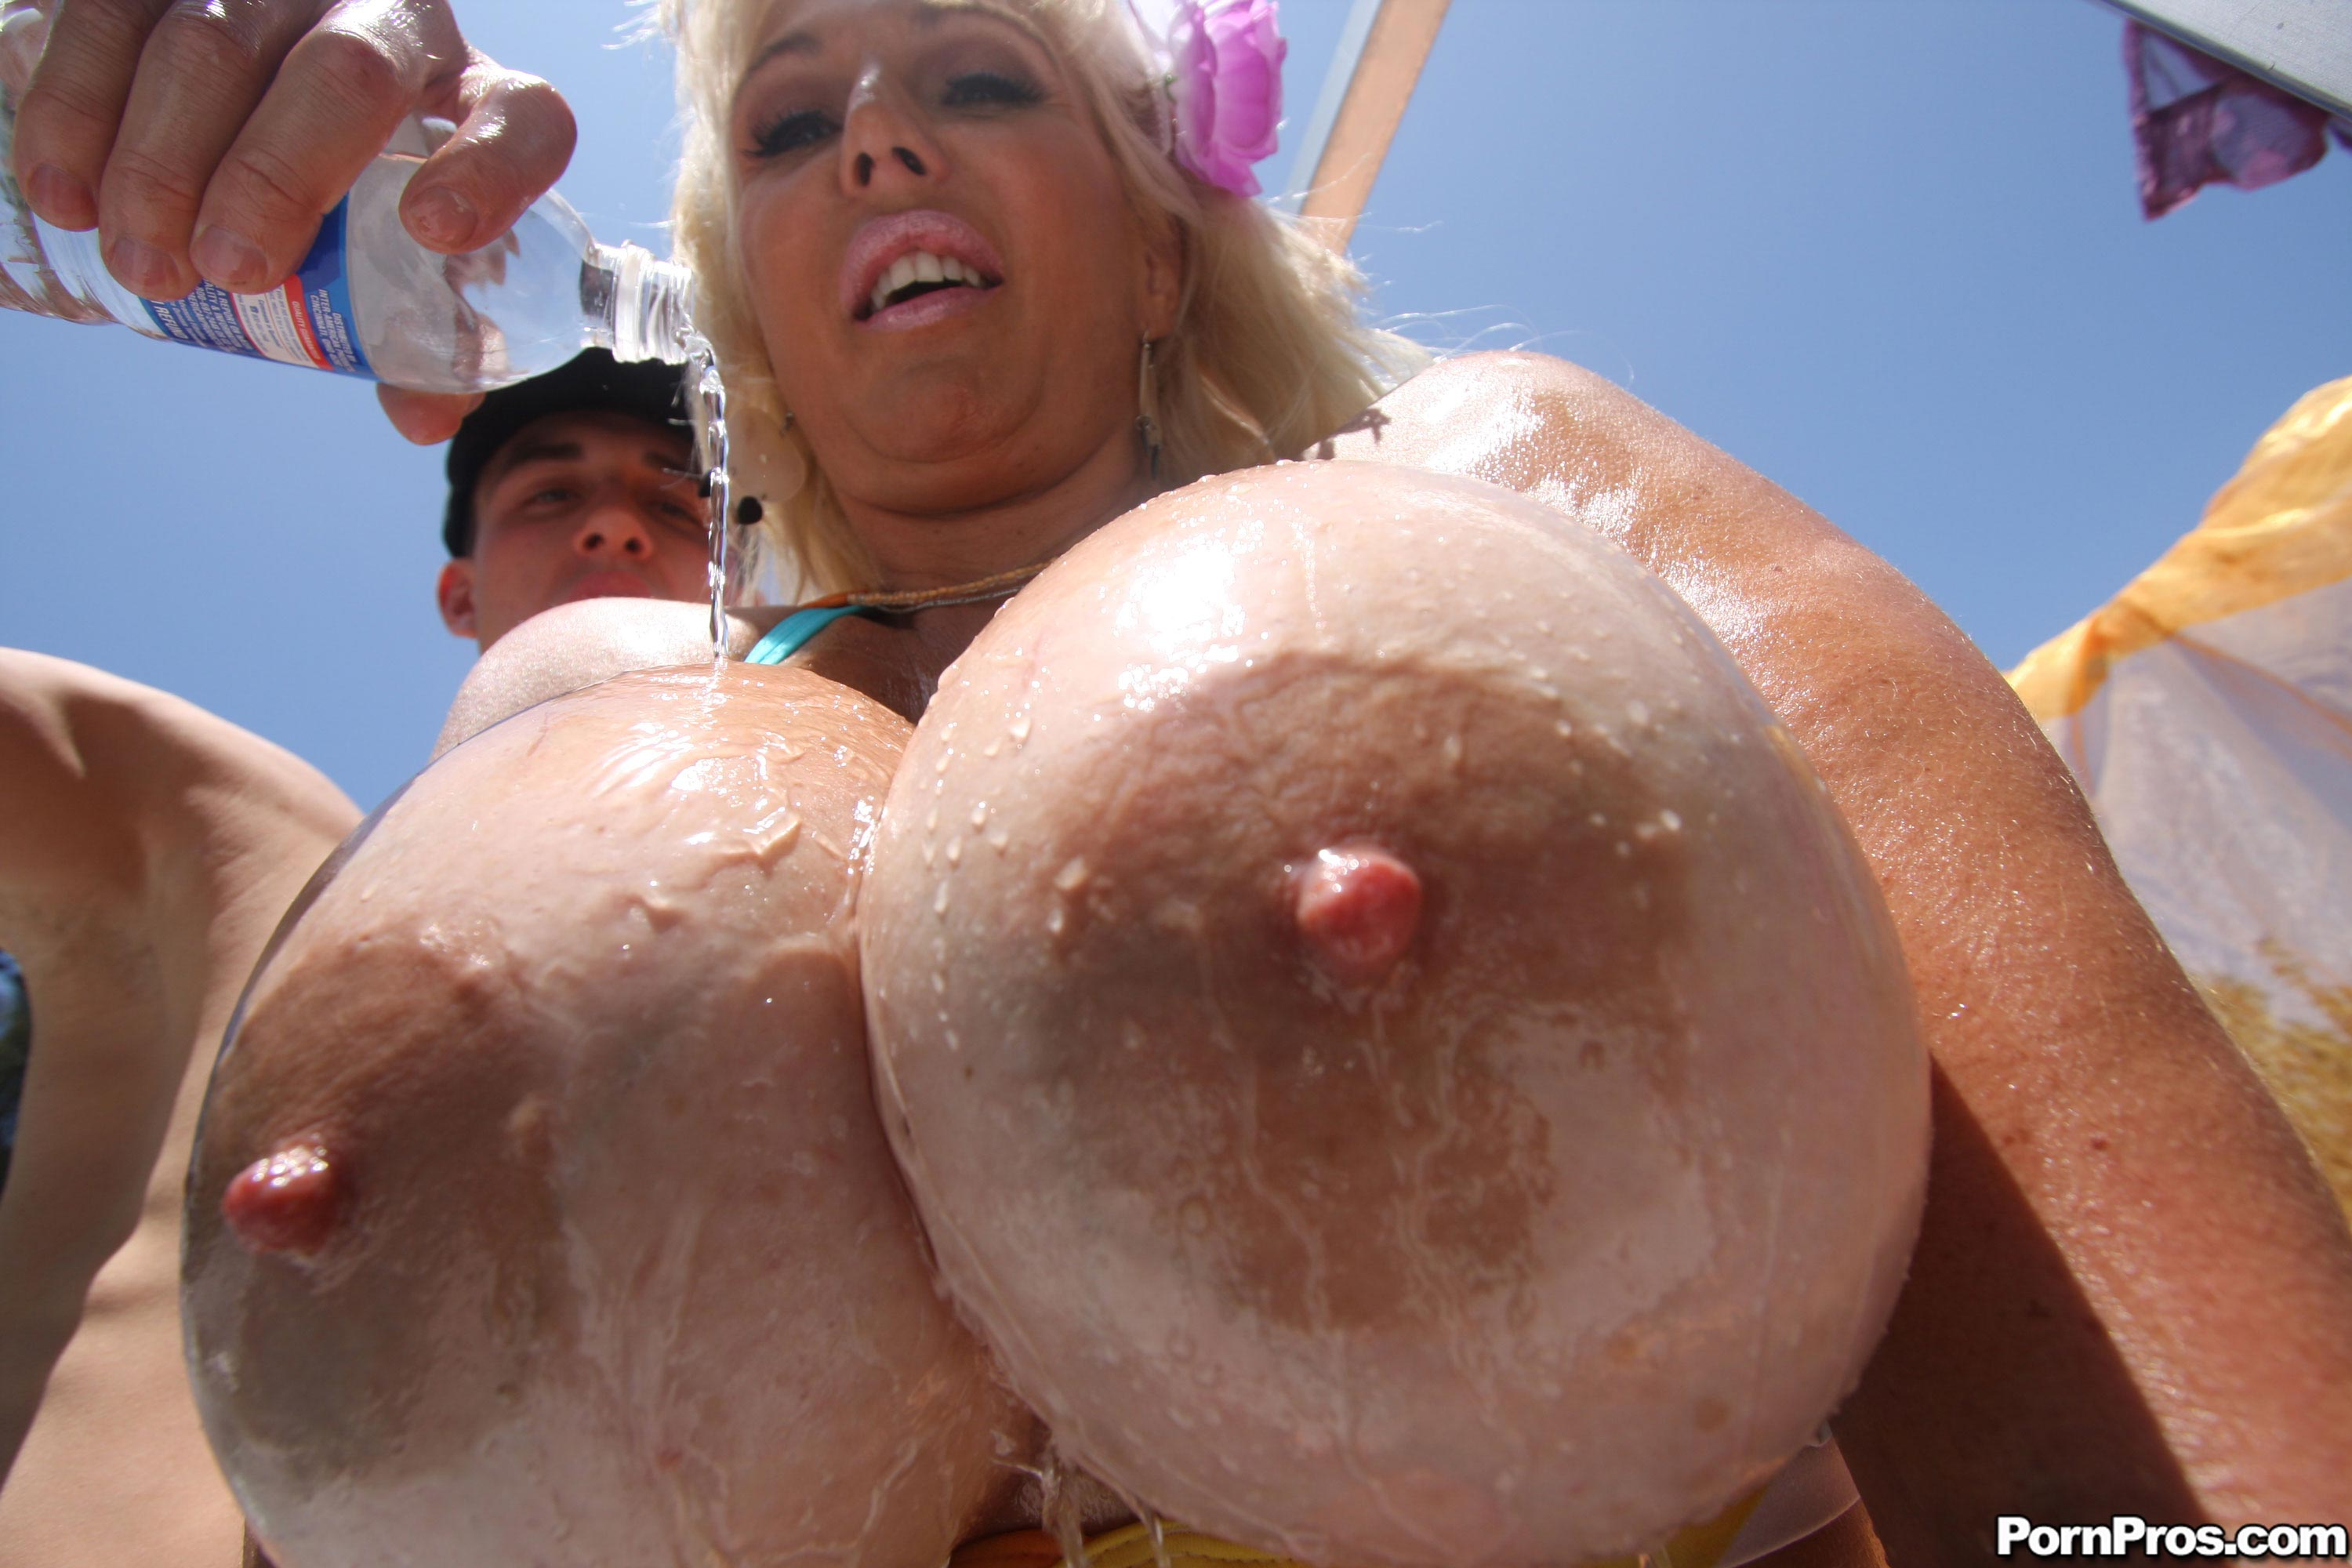 Big tits freaks of nature vol 31 6